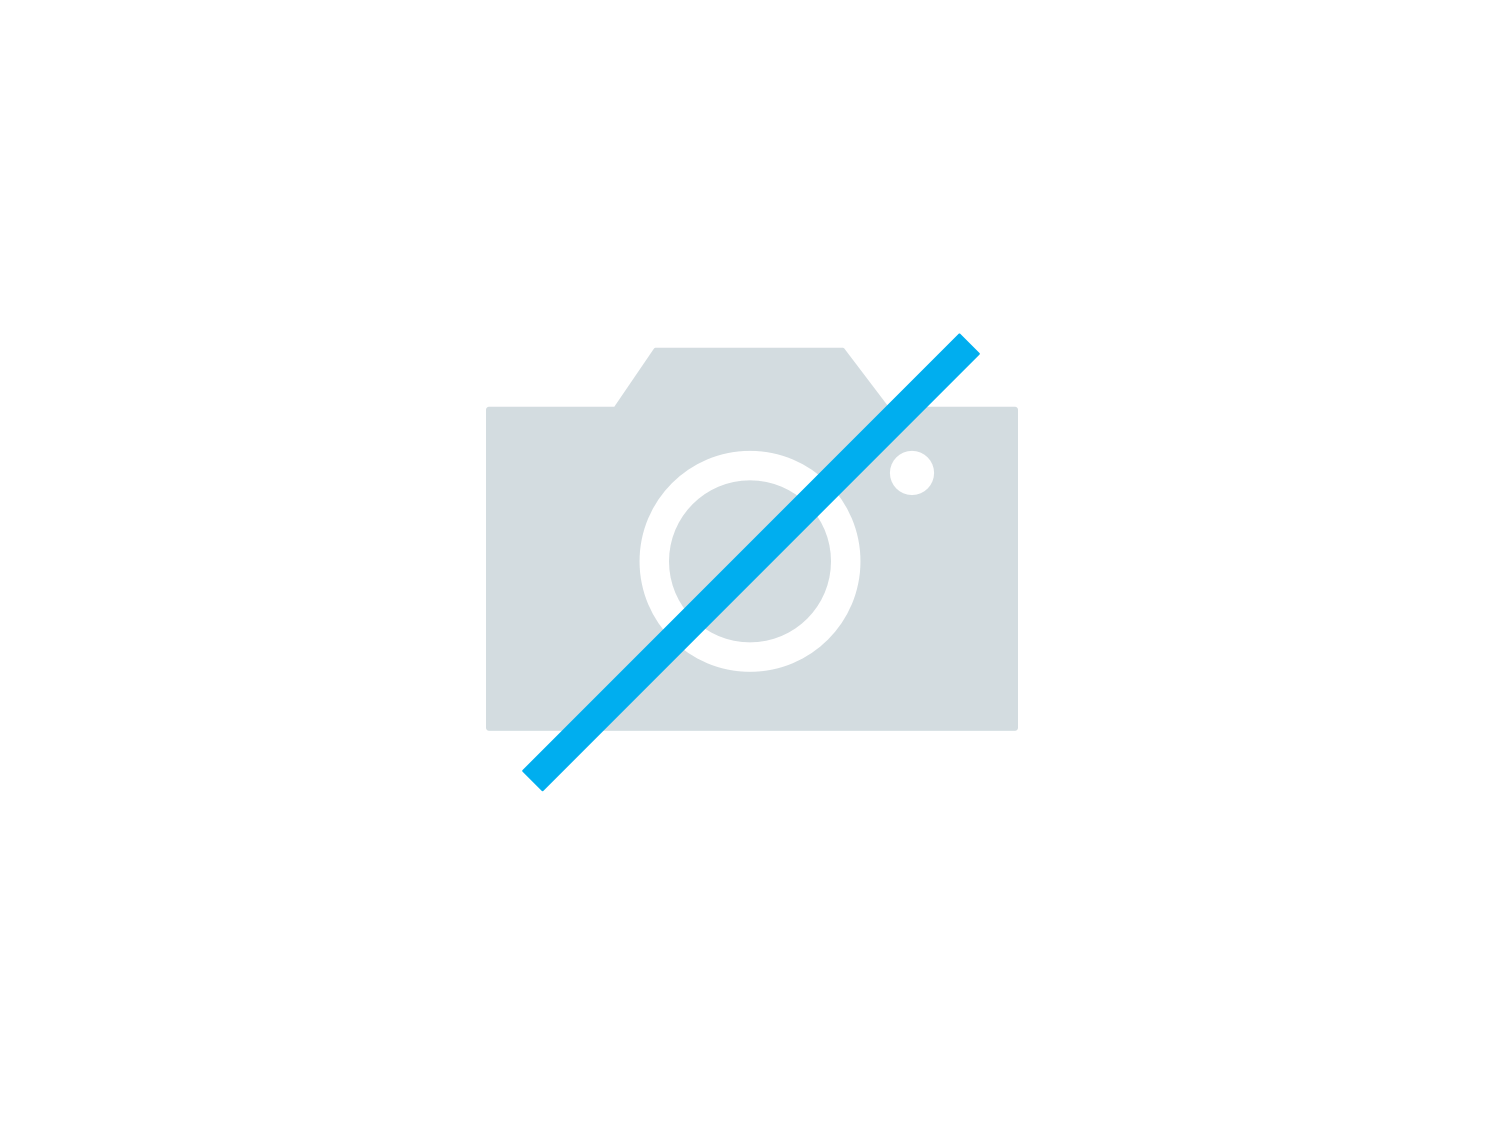 Muursticker Mariposa wit, set van 9